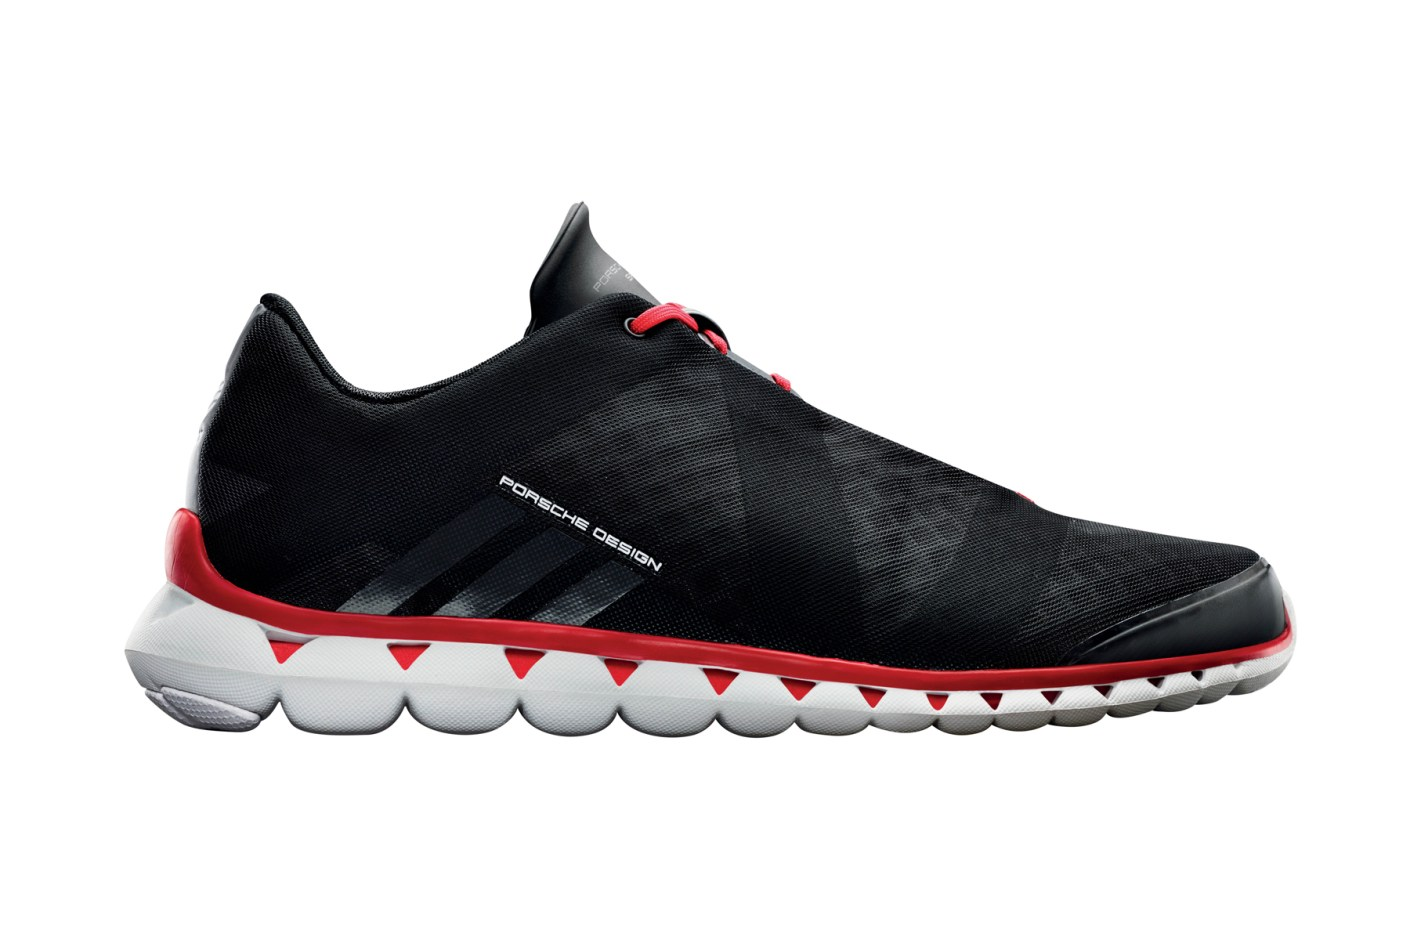 Image of Porsche Design Sport by adidas Gym Easy Trainer II